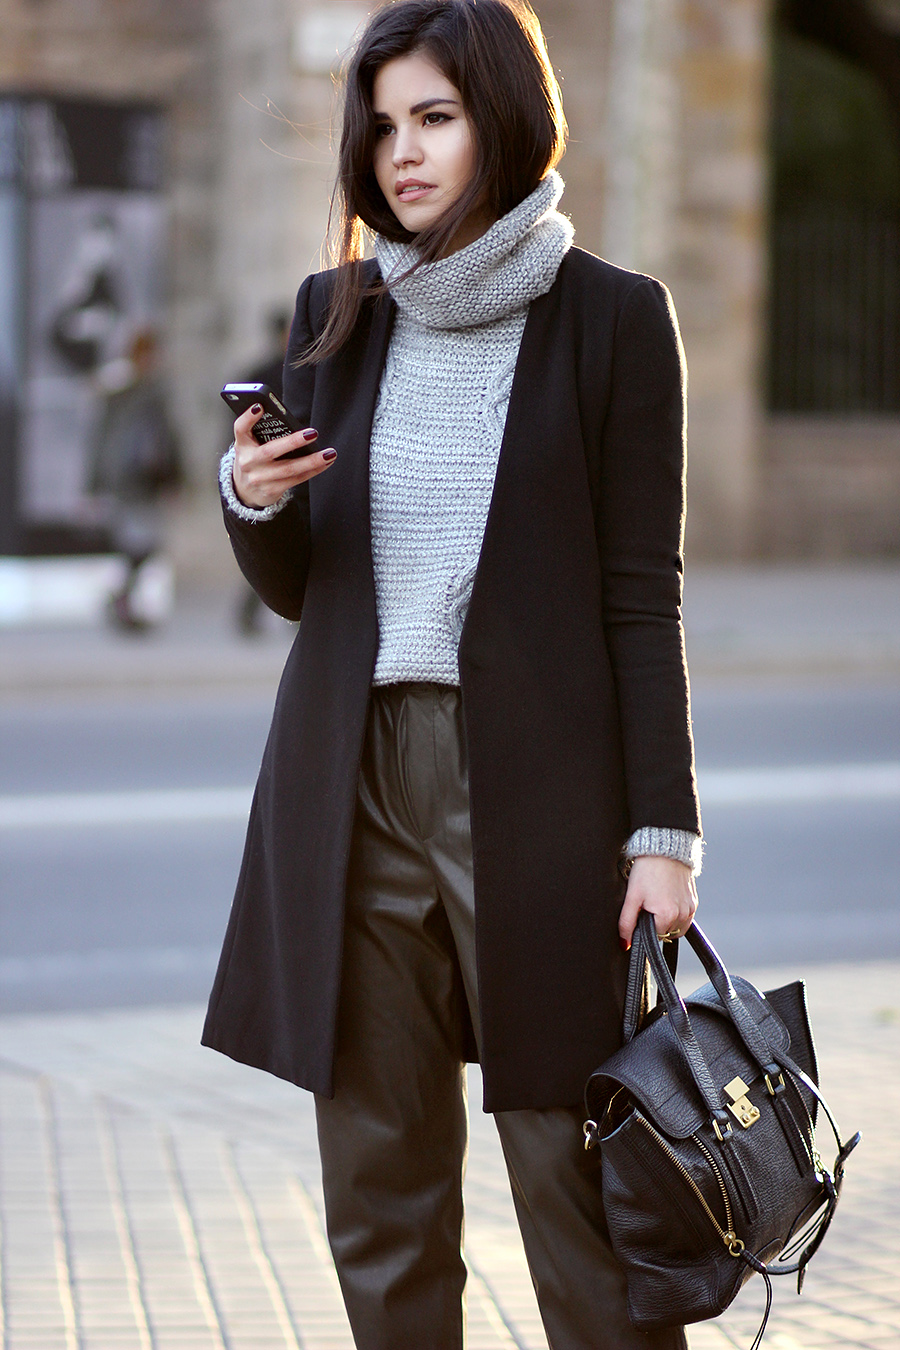 Just The Design: Adriana Gastélum is wearing a grey turtleneck sweater from Sheinside